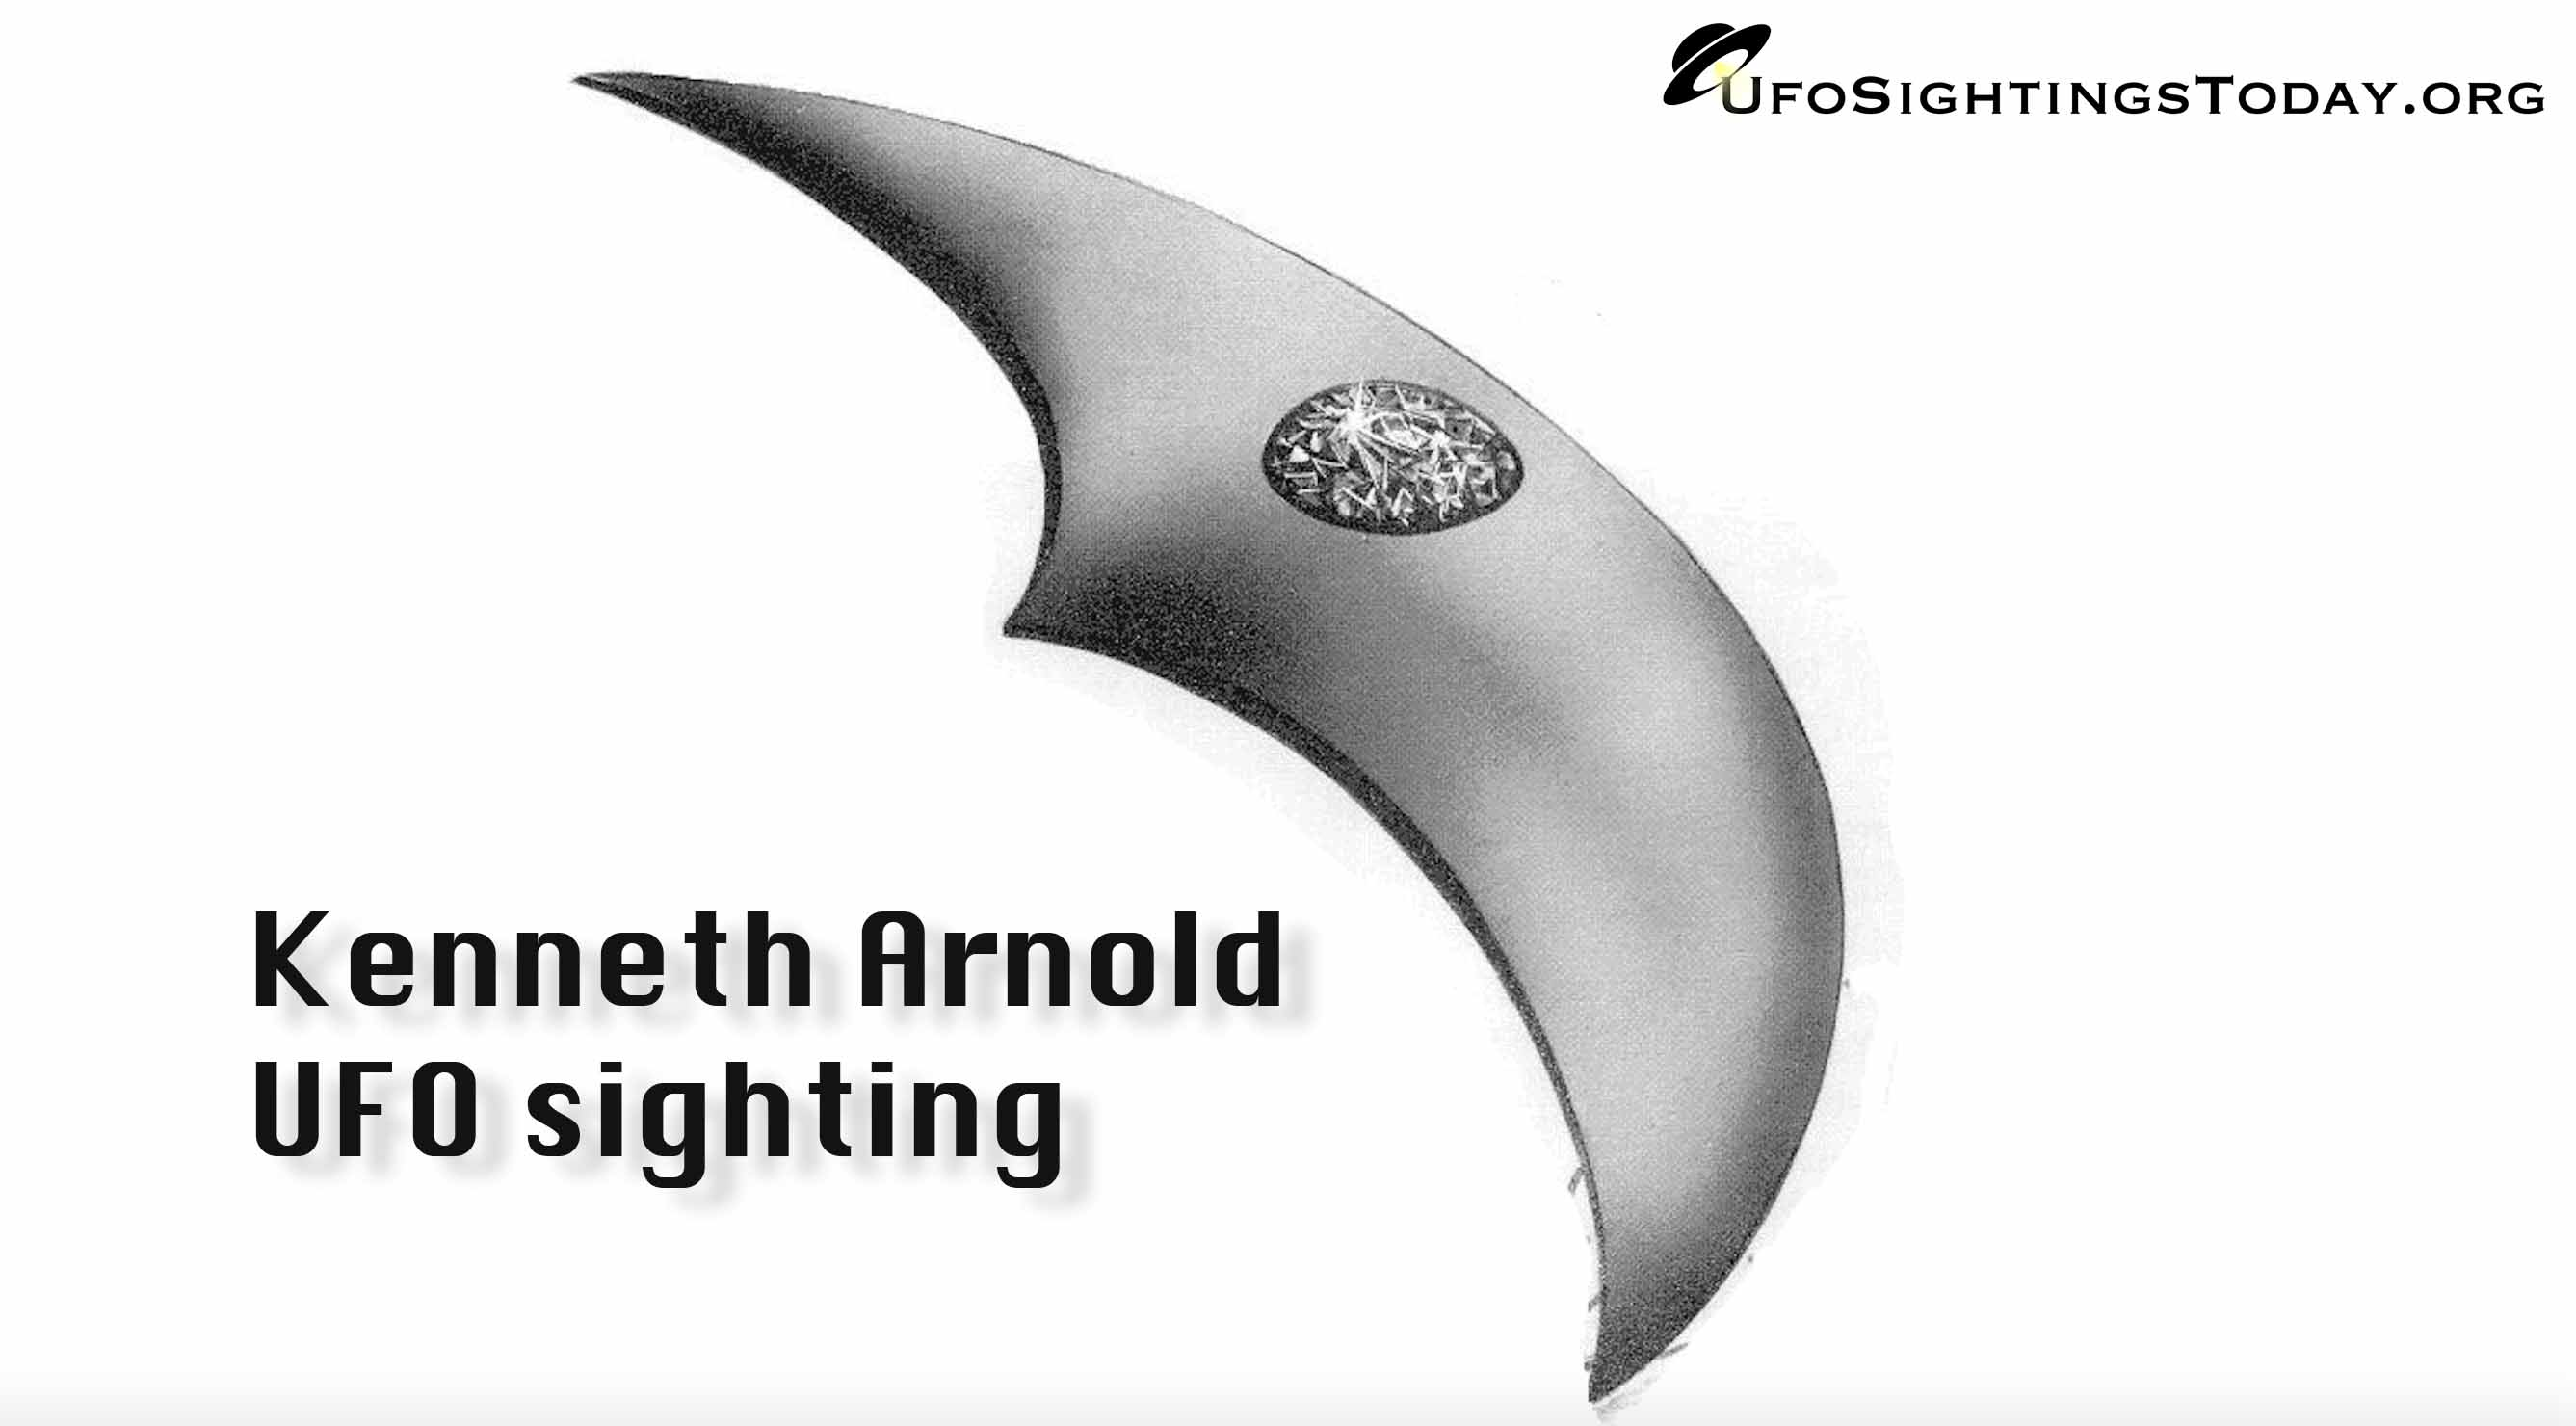 kenneth arnold ufo sighting